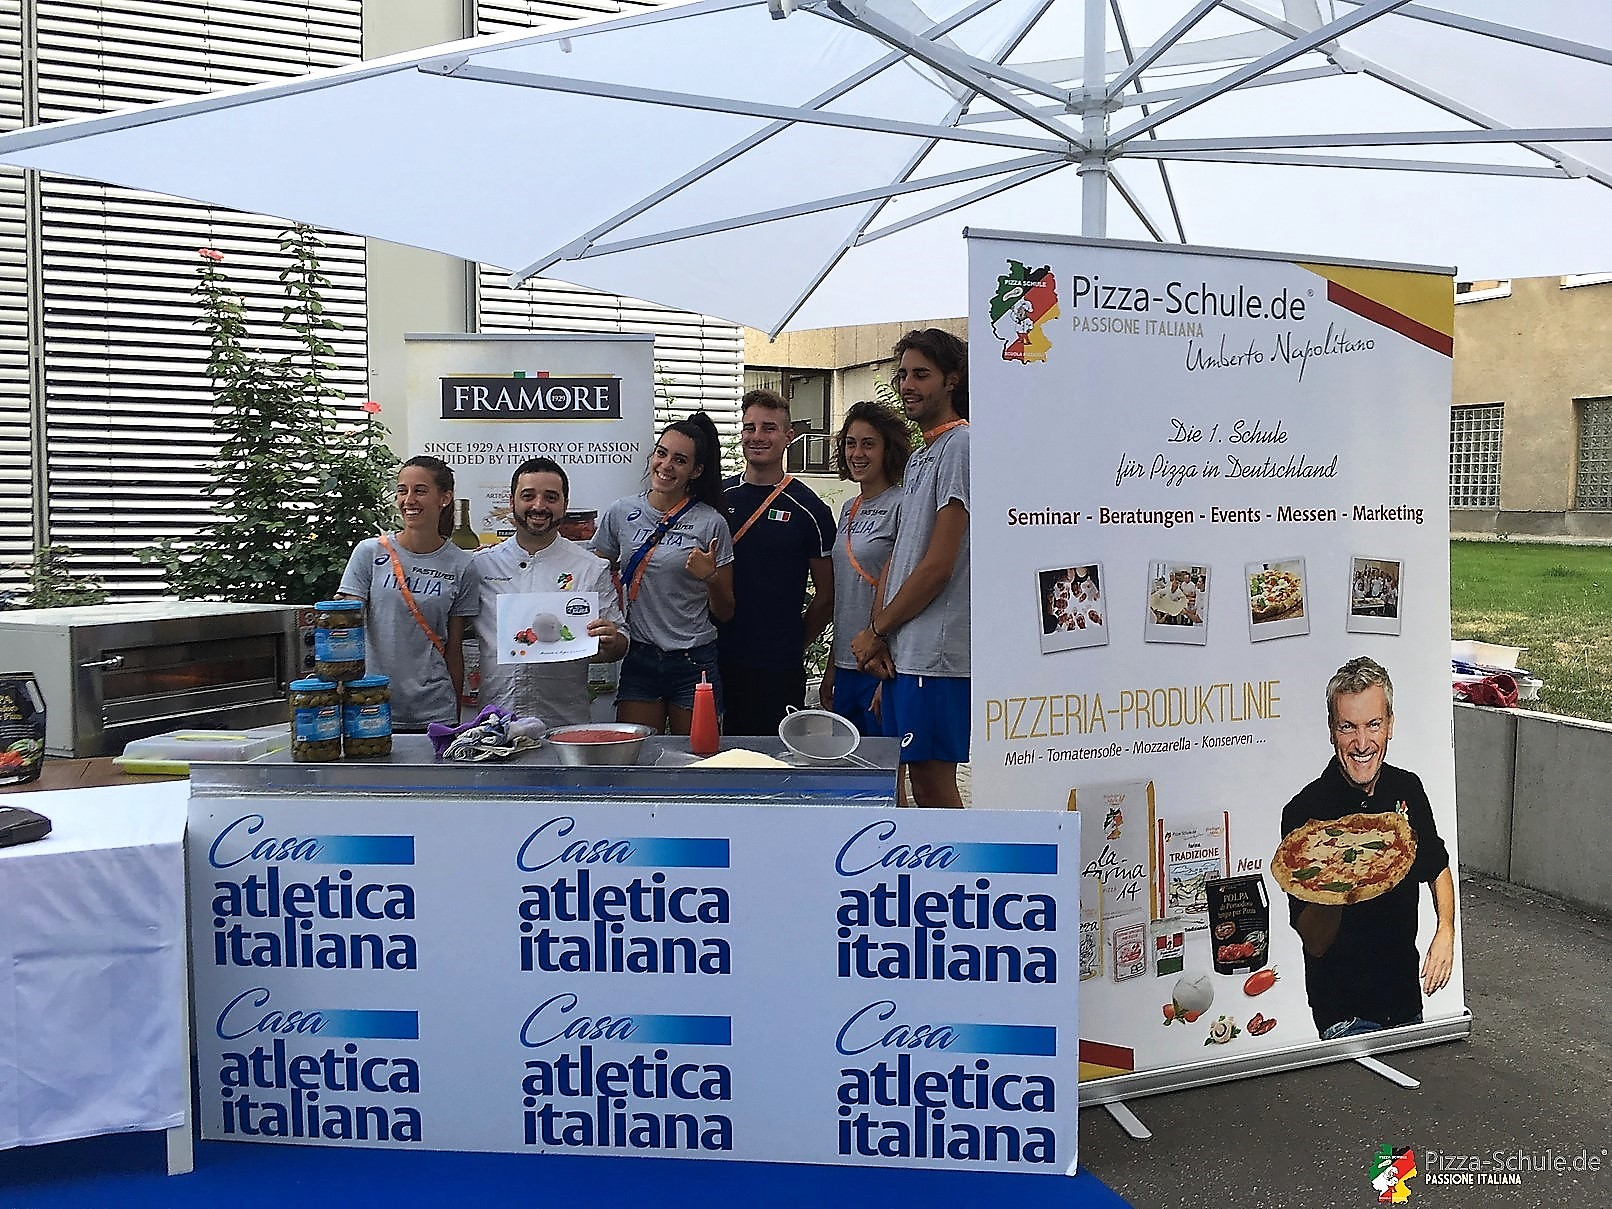 Atletica italiana 2018 Berlino - Pizza-Schule